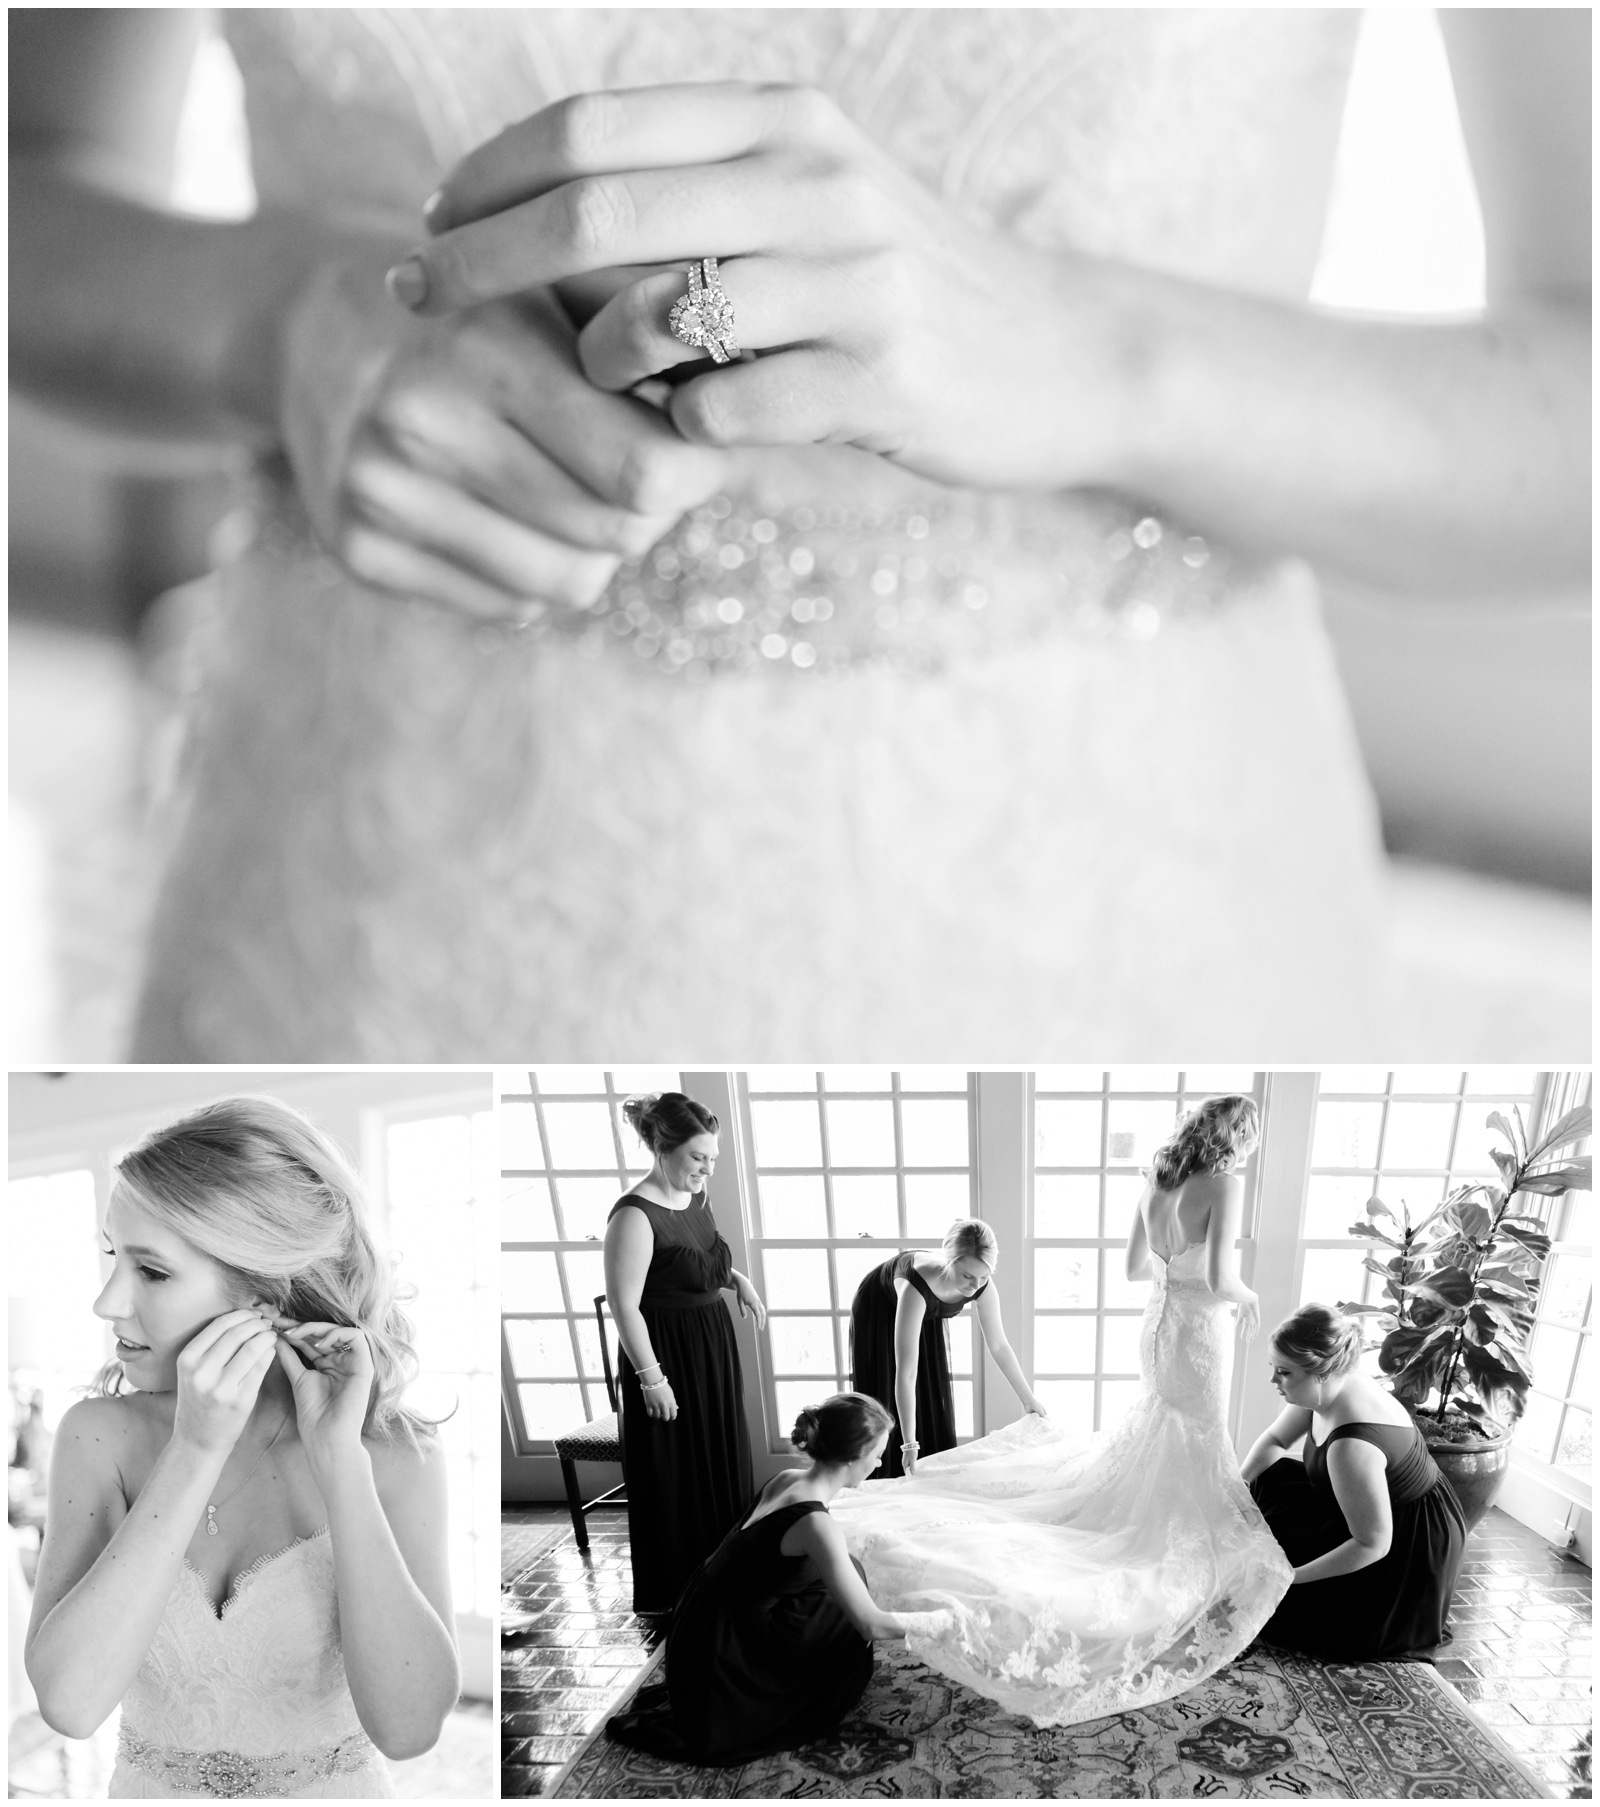 Morgan & Kyle_RoswellWedding_ArdentStory_0005